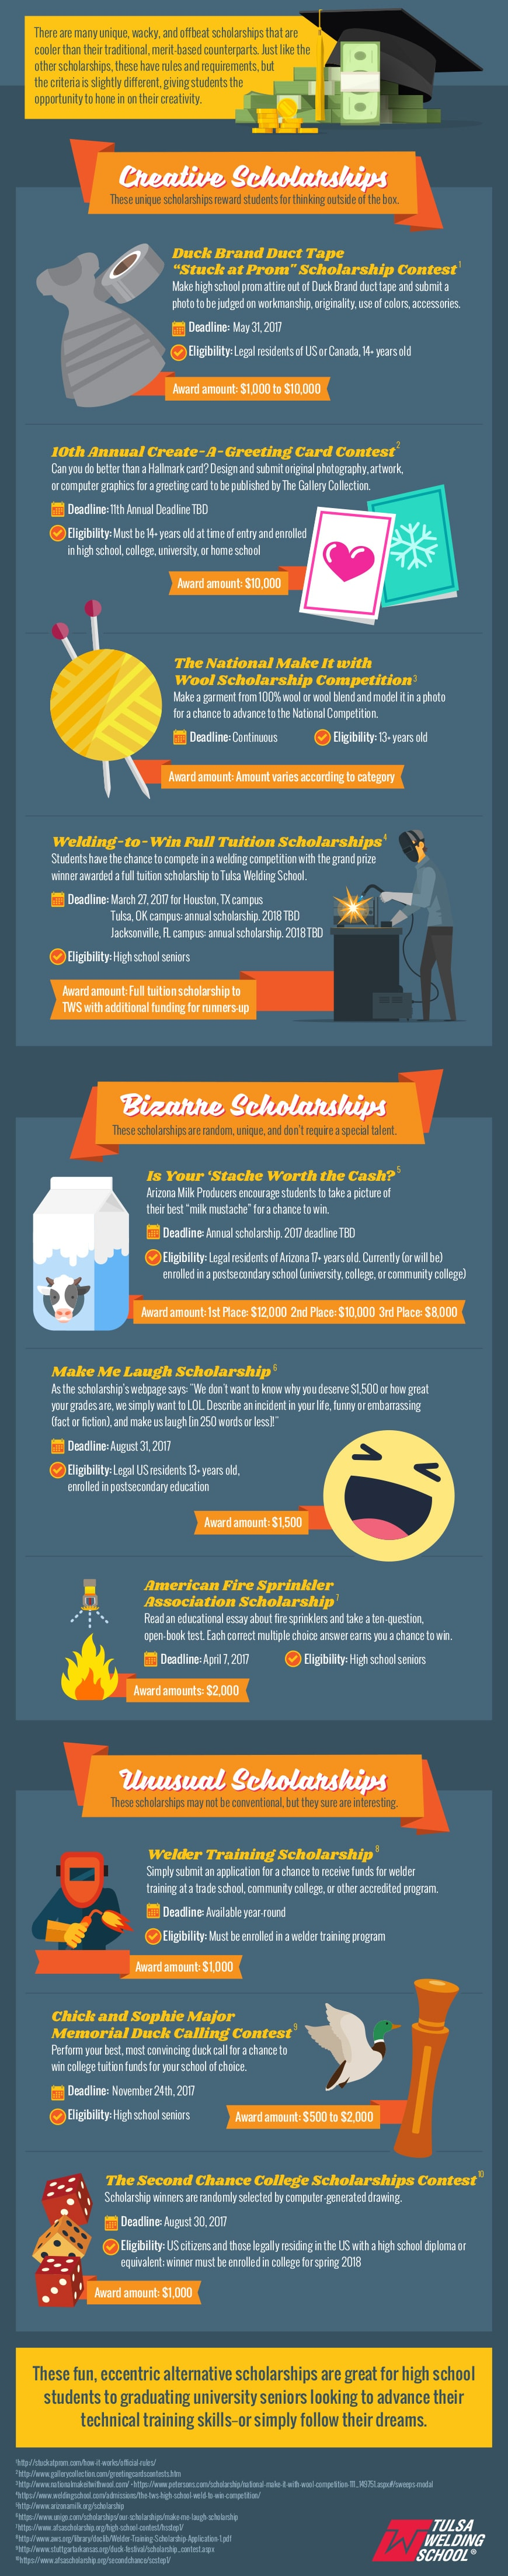 bizarre creative unusual scholarships